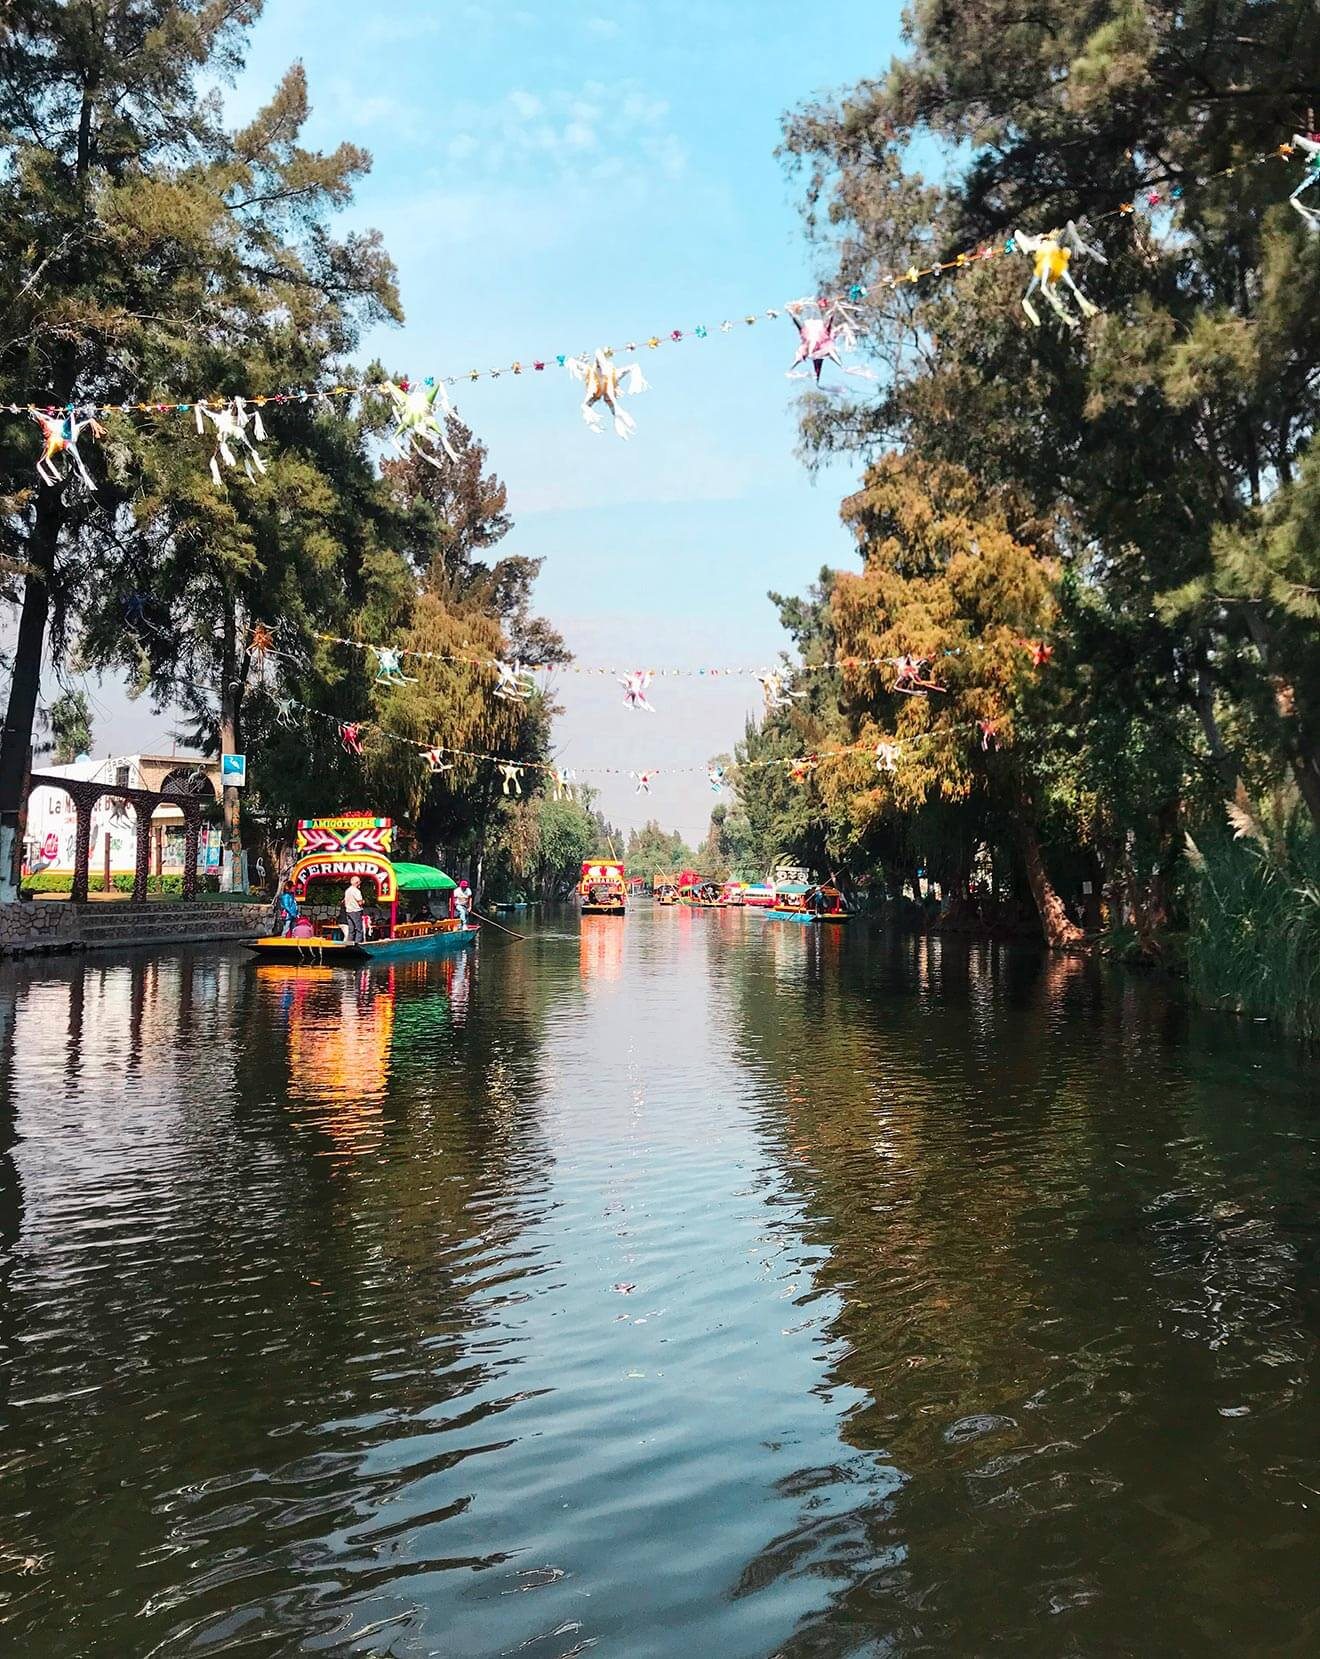 Xochimilco canal view with trees